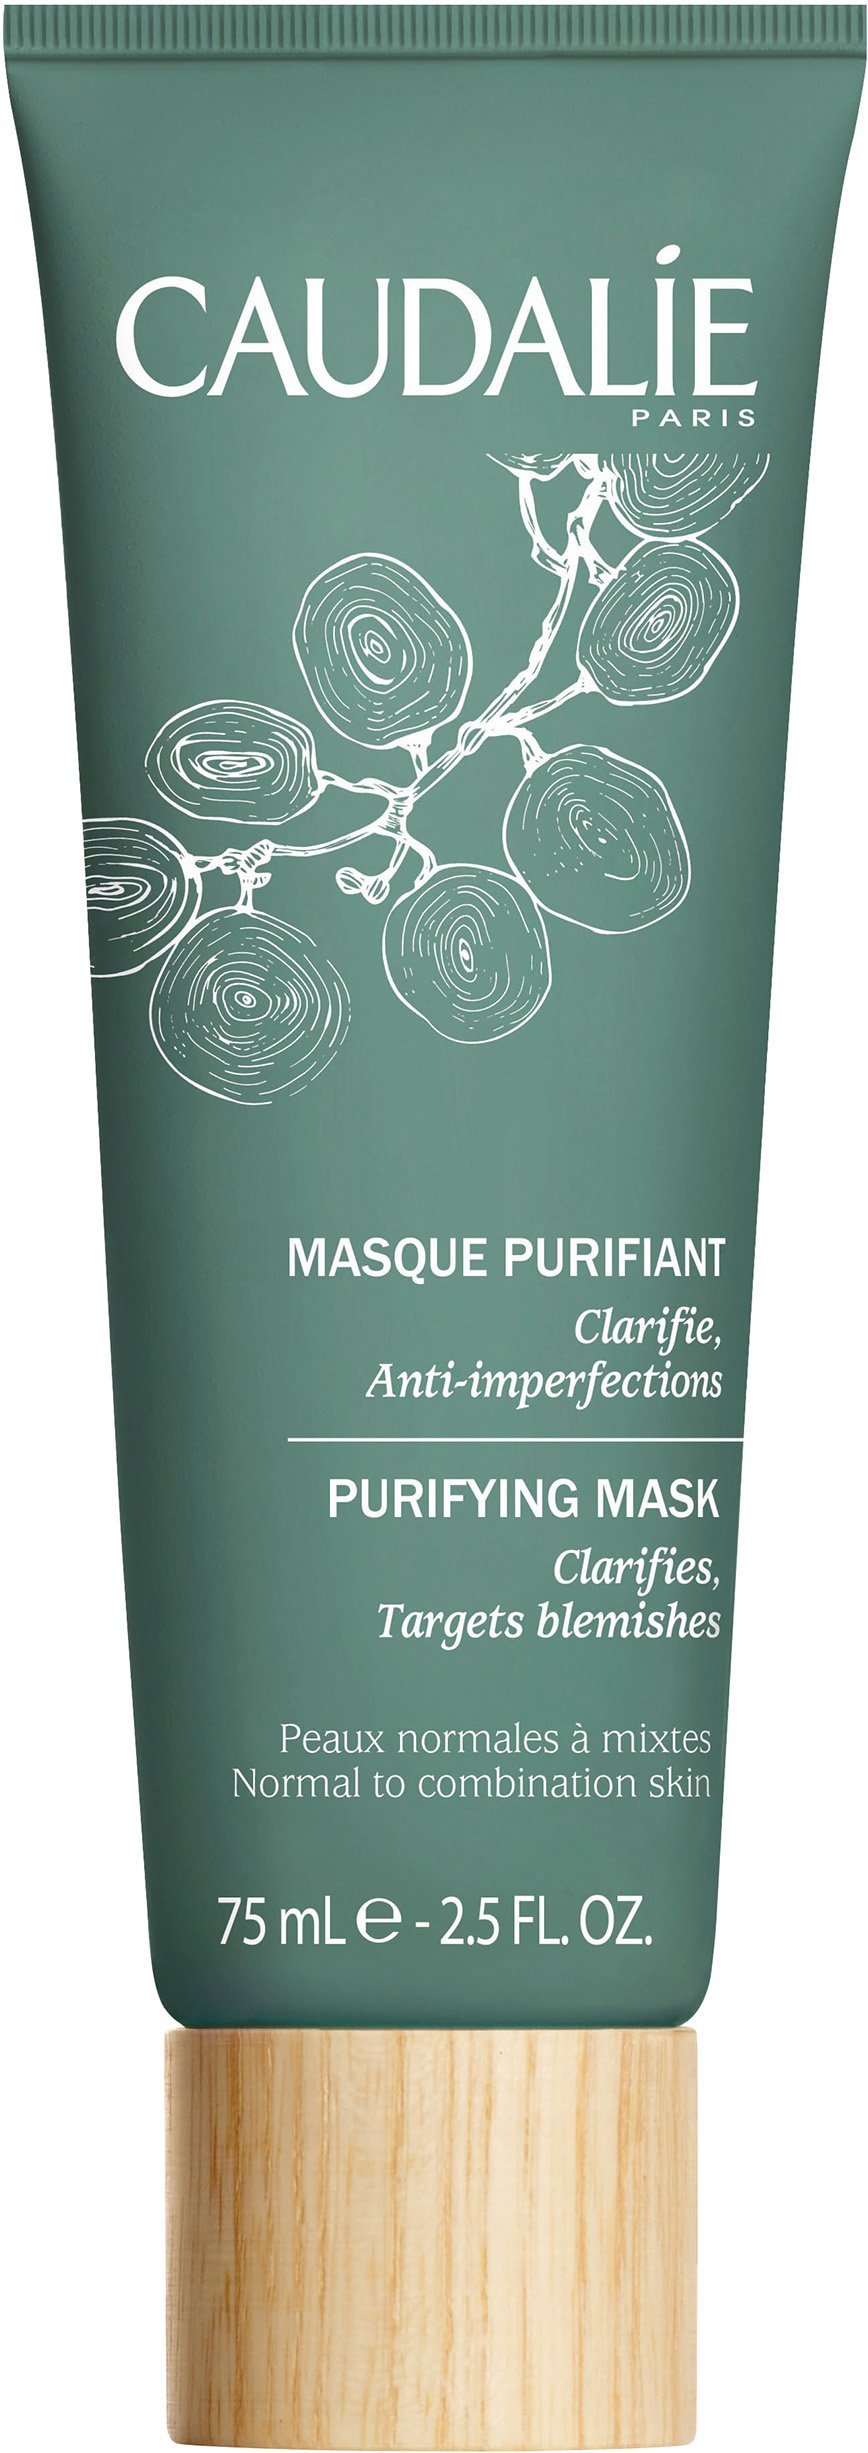 Caudalie - Purifying Mask 75 ml